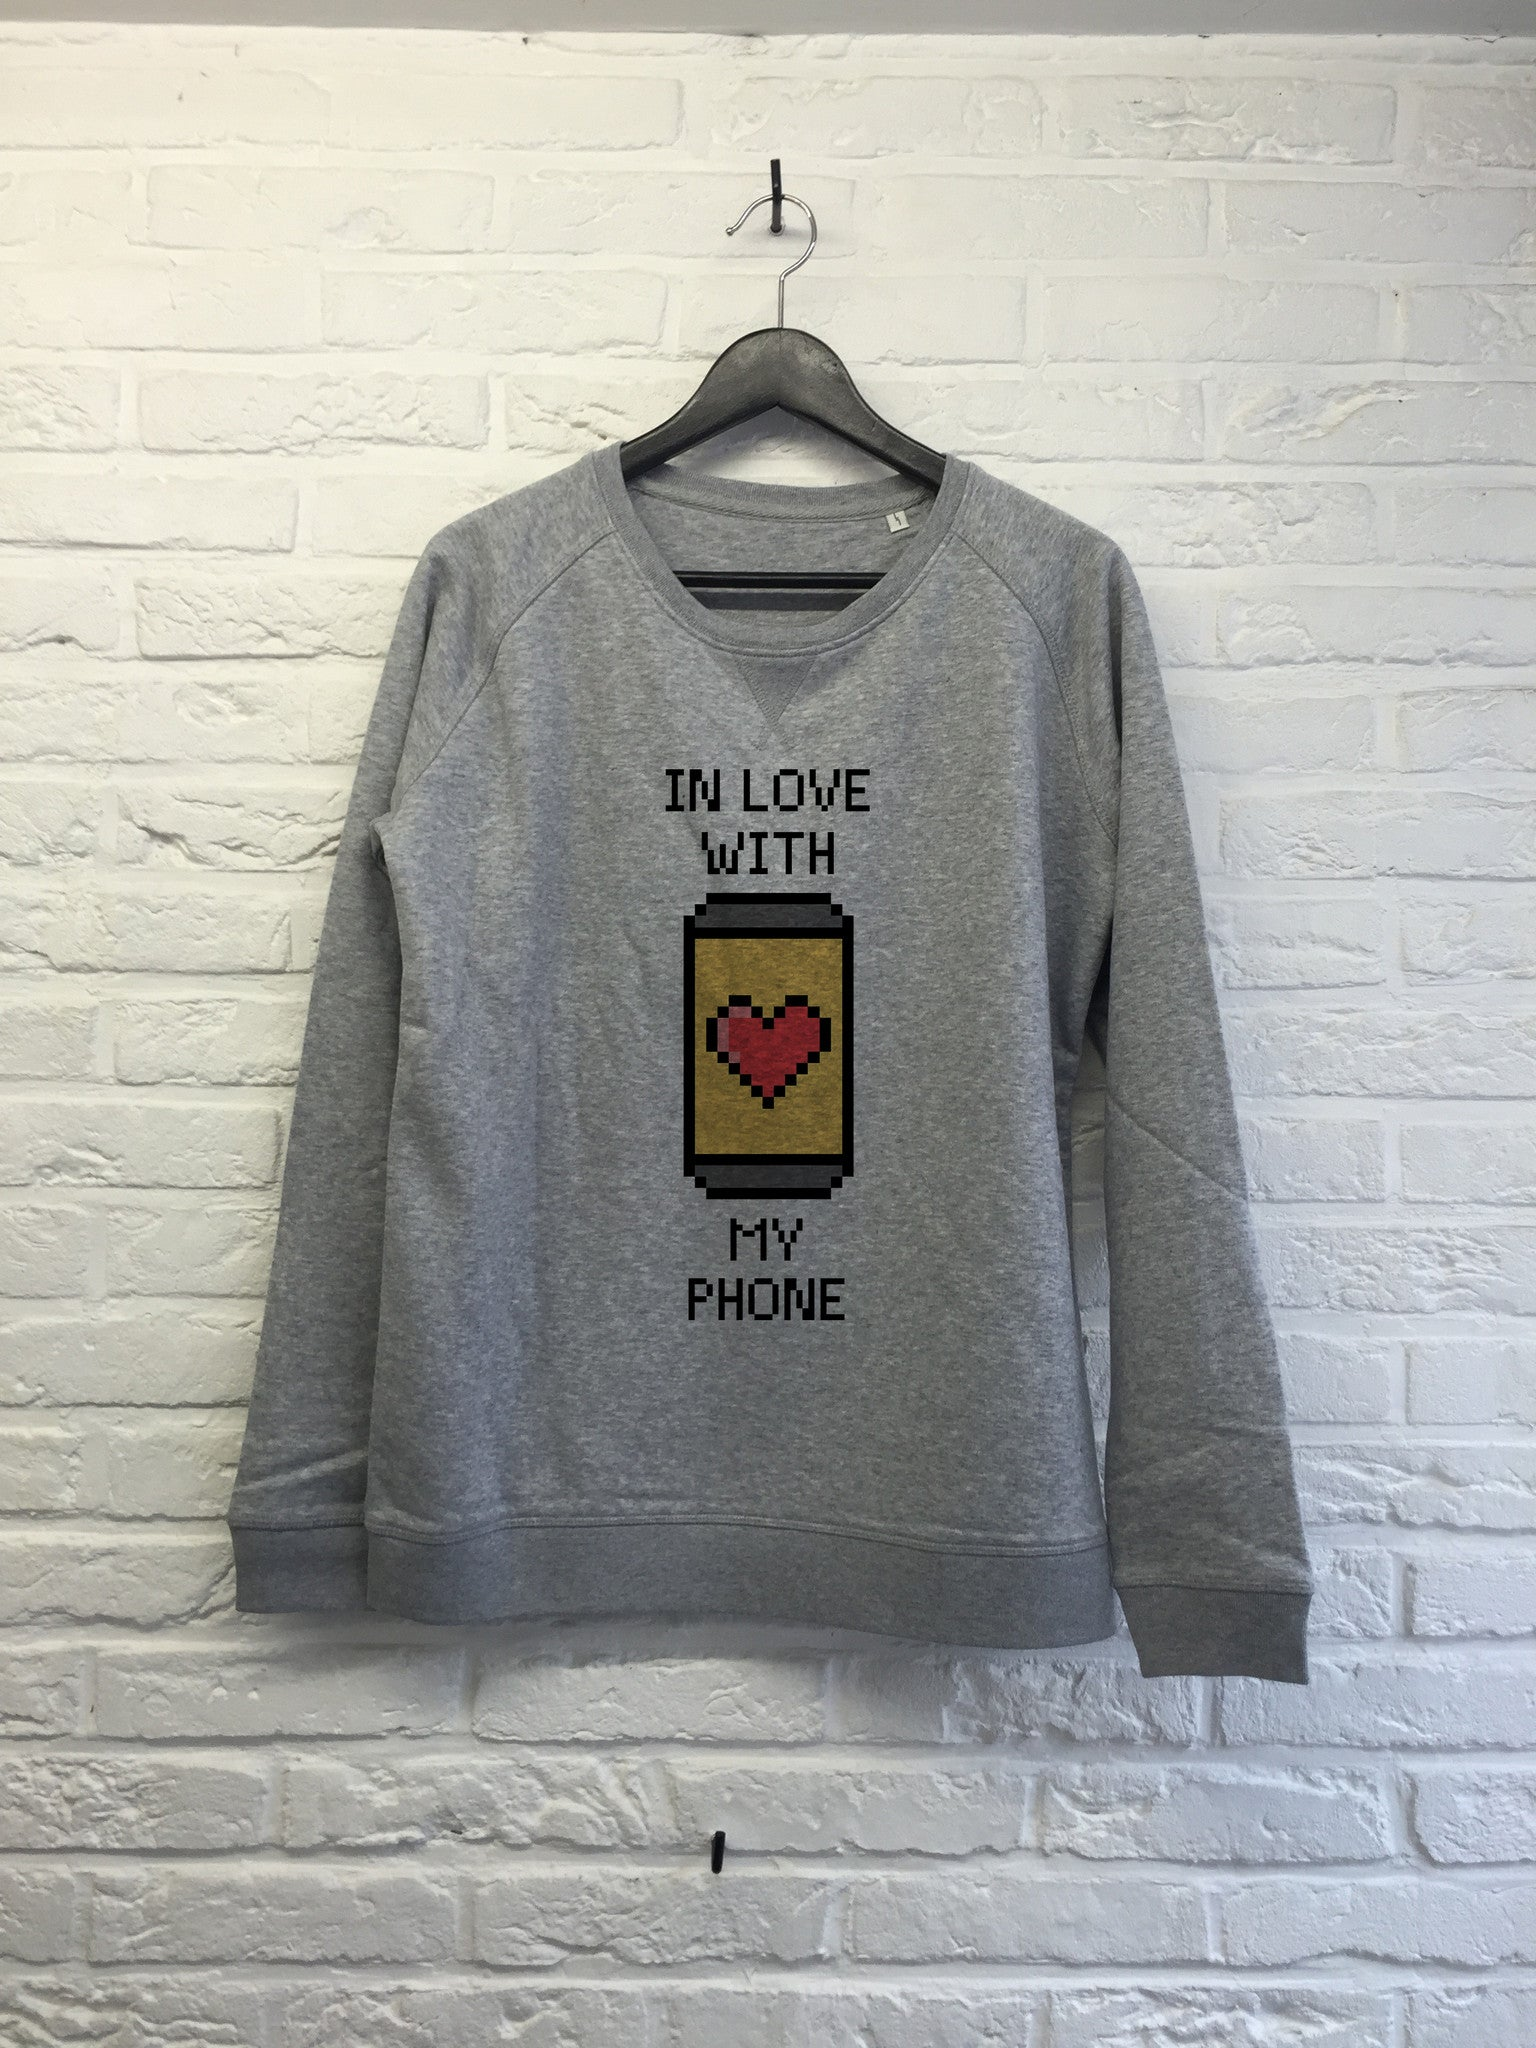 In love with my phone - Sweat - Femme-Sweat shirts-Atelier Amelot